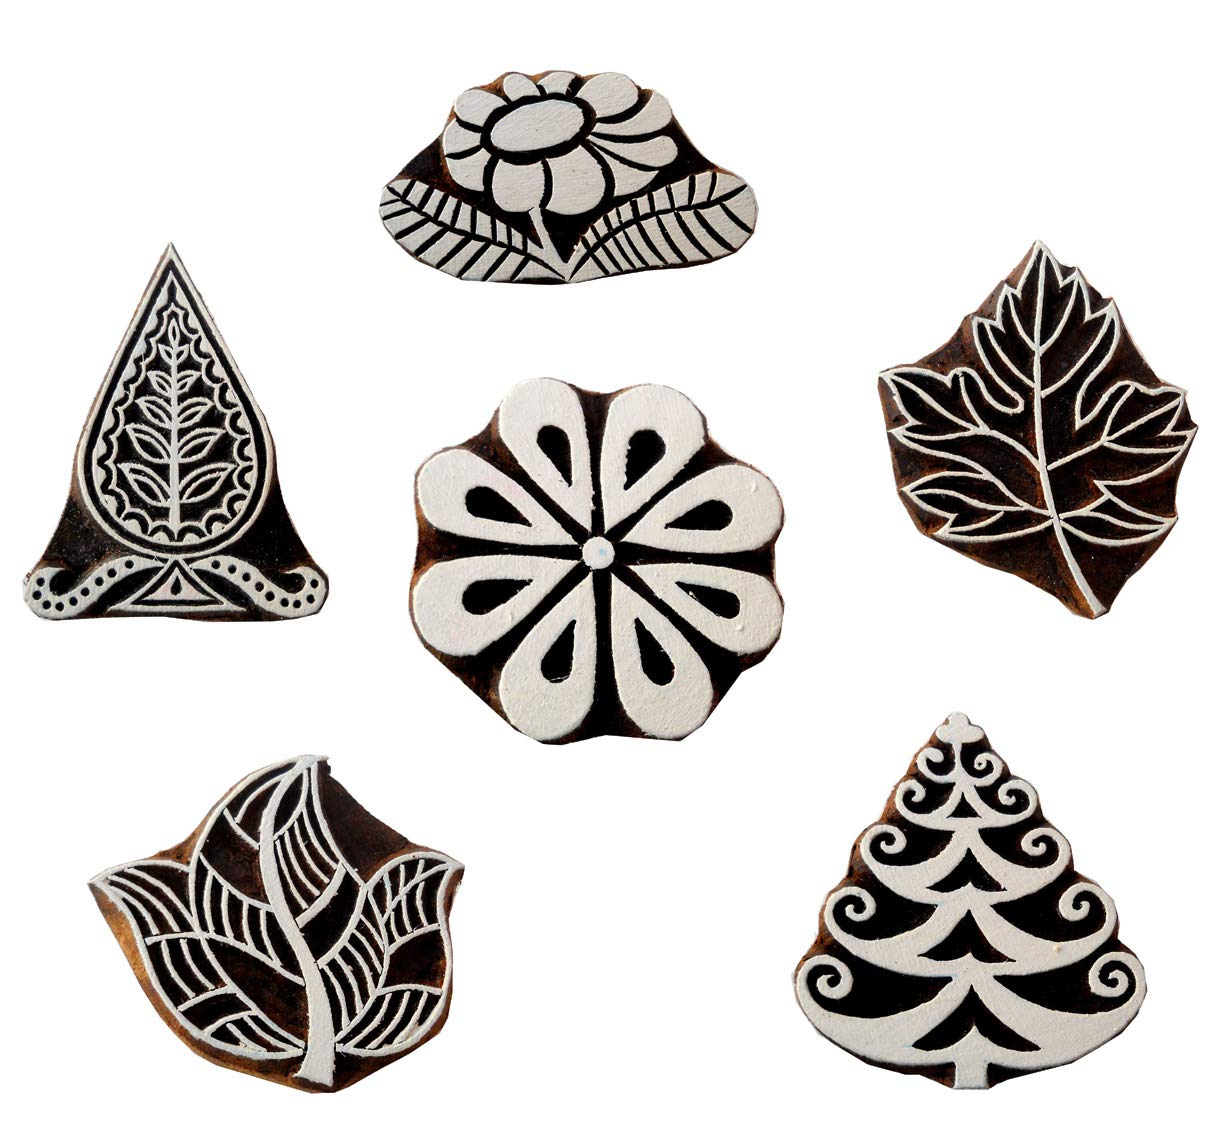 Maple Leaf wooden block stamp// Tattoo// Indian Textile Printing Block